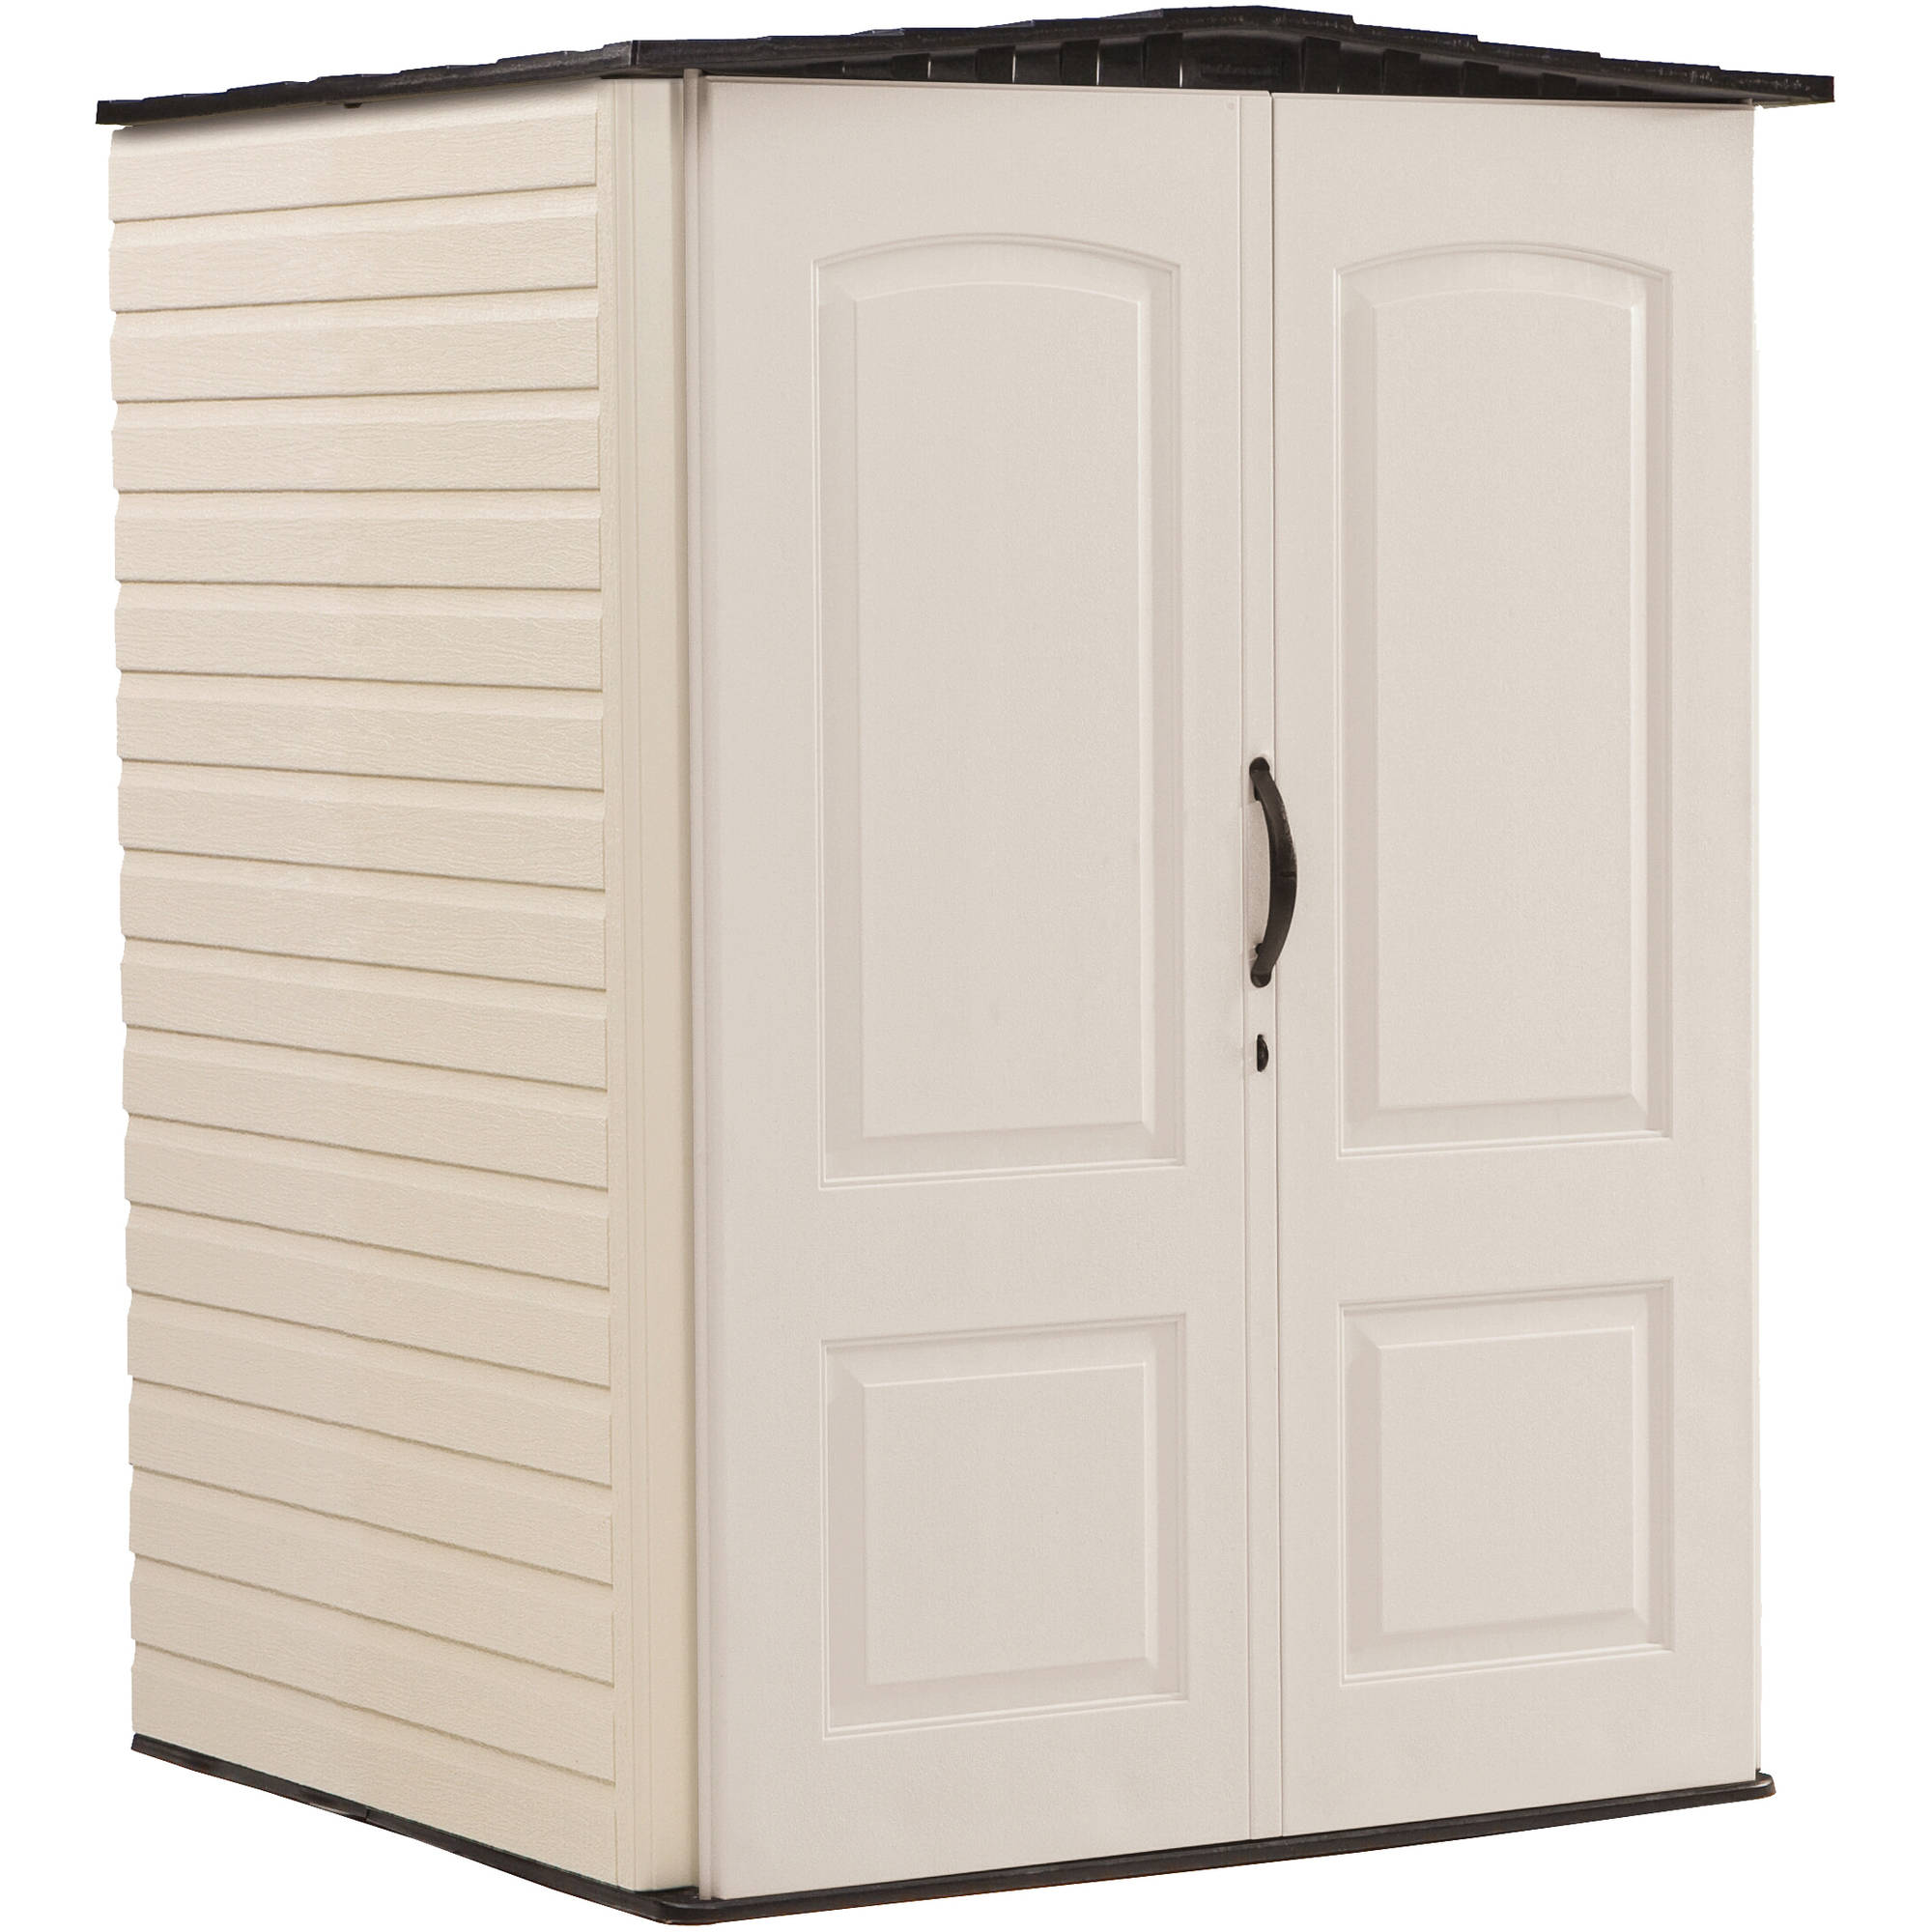 Rubbermaid Storage Sheds | Rubbermaid 2 Ft X 2 Ft Vertical Storage Shed | Outdoor Storage Containers